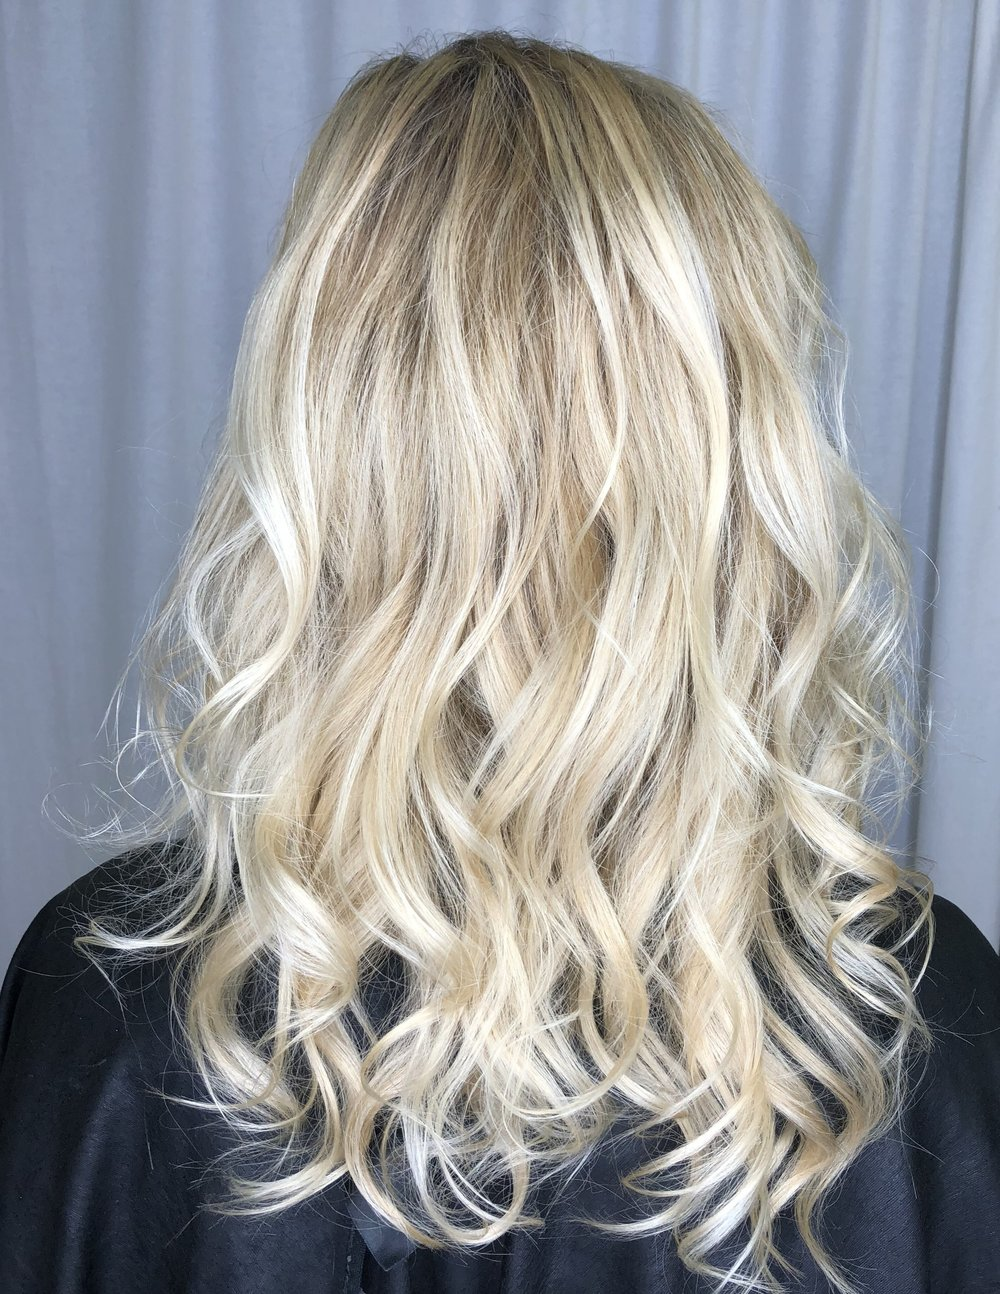 Beach Waves by Taylor